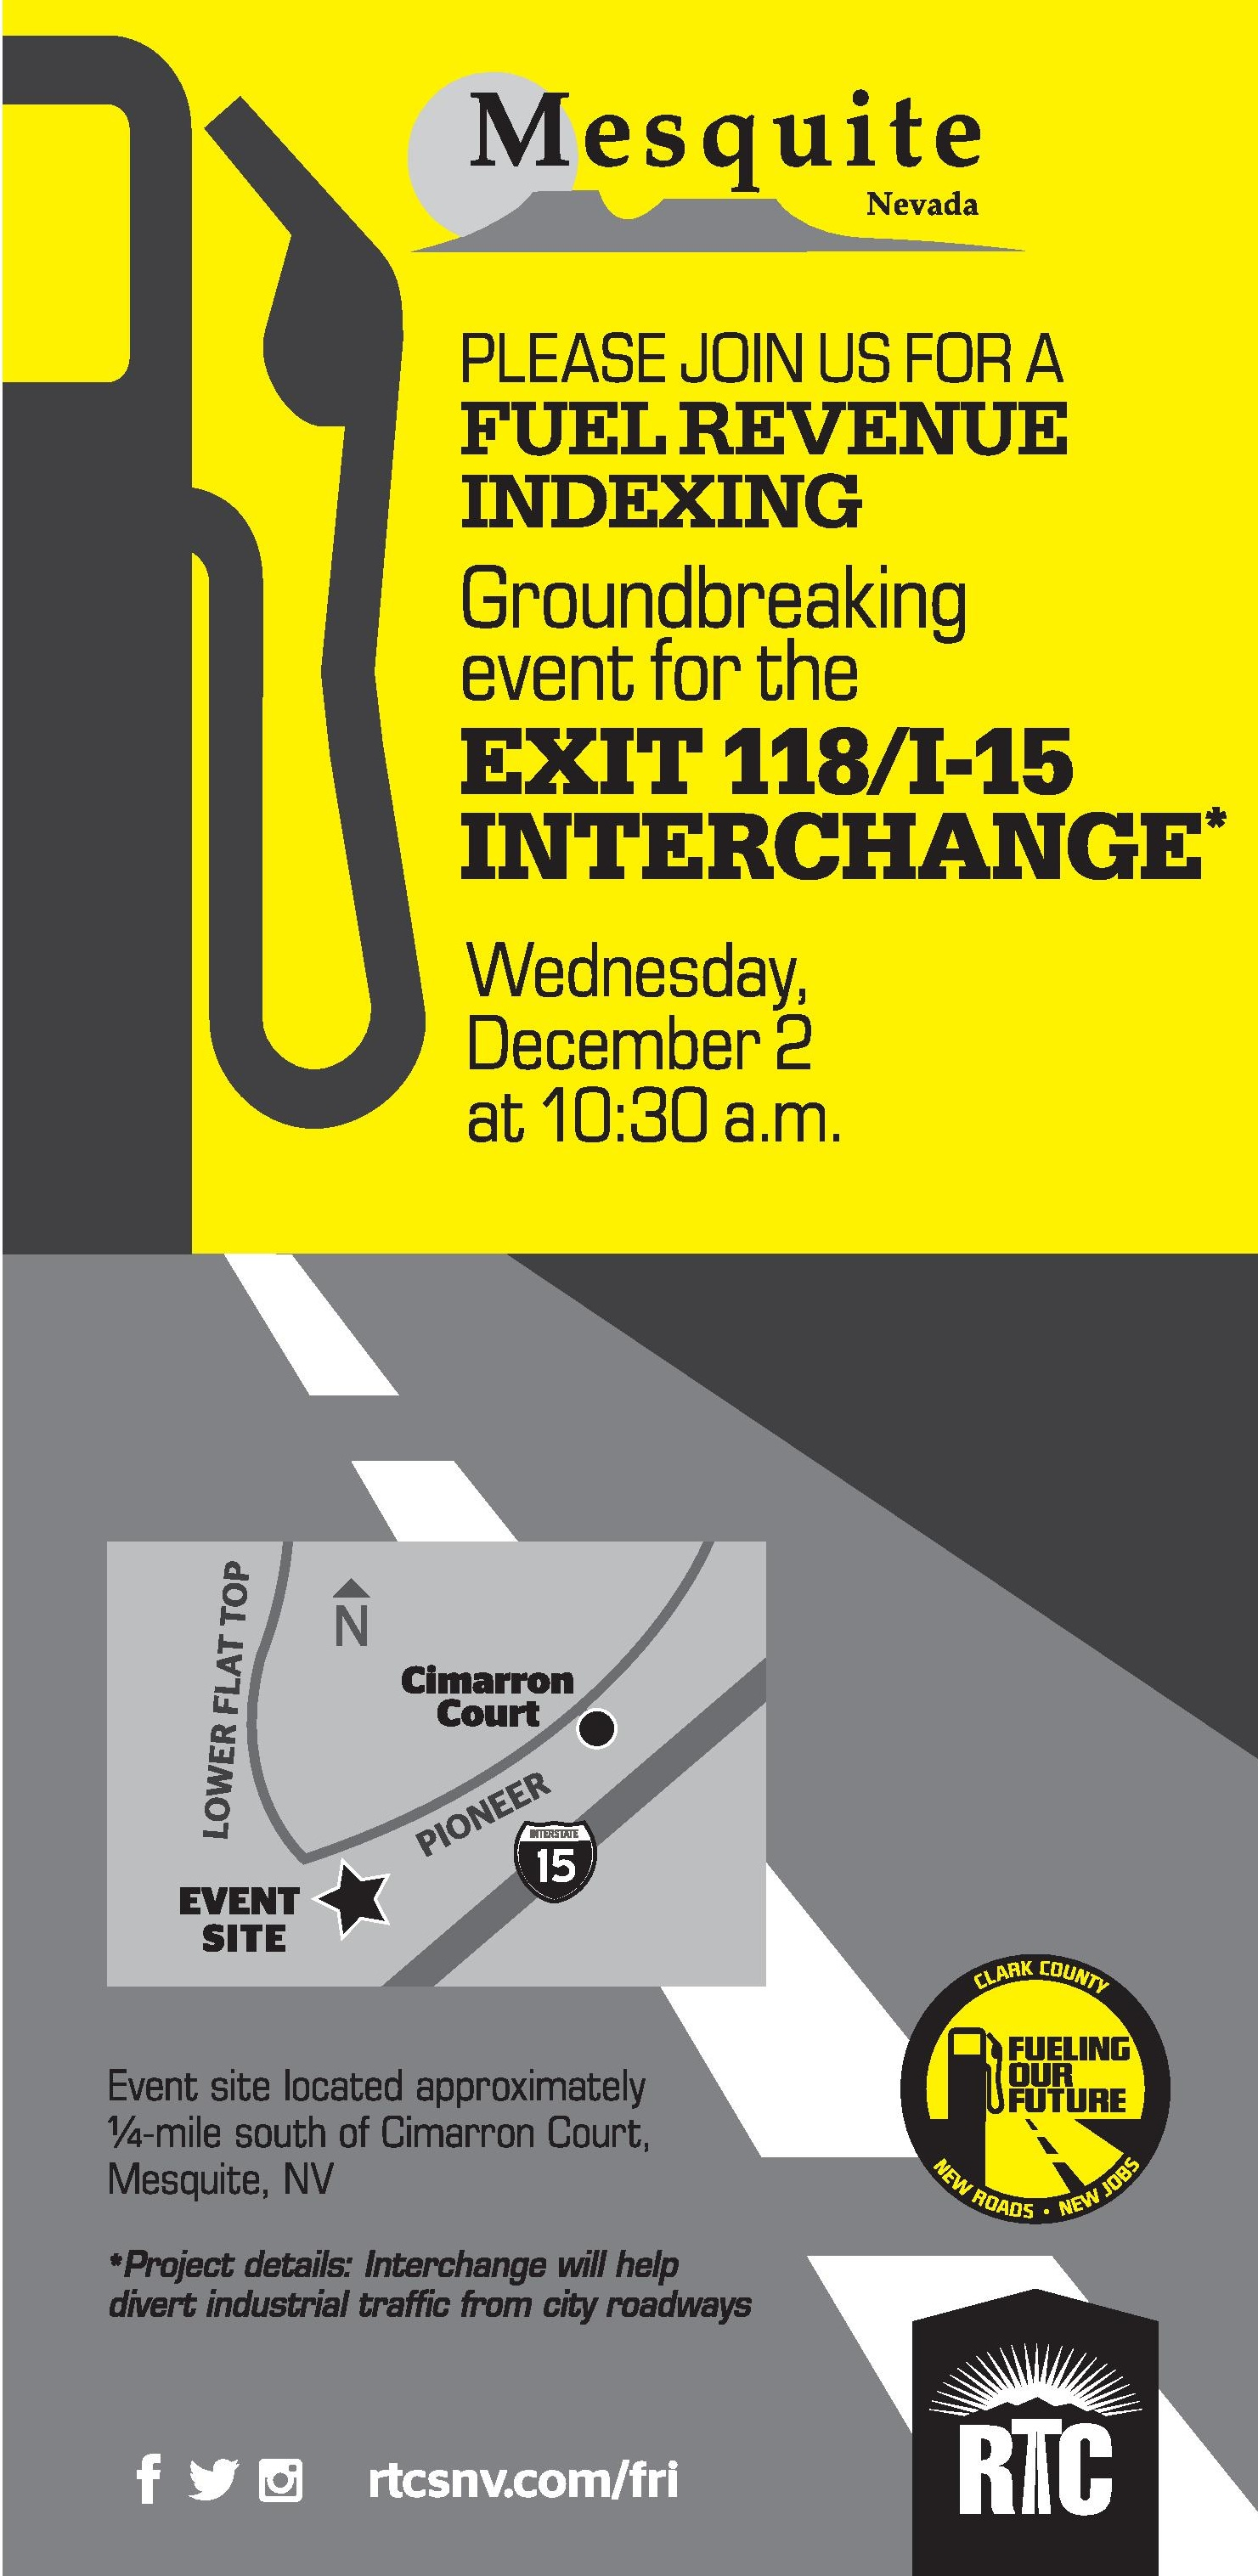 Public invited to Exit 118/I-15 Interchange groundbreaking